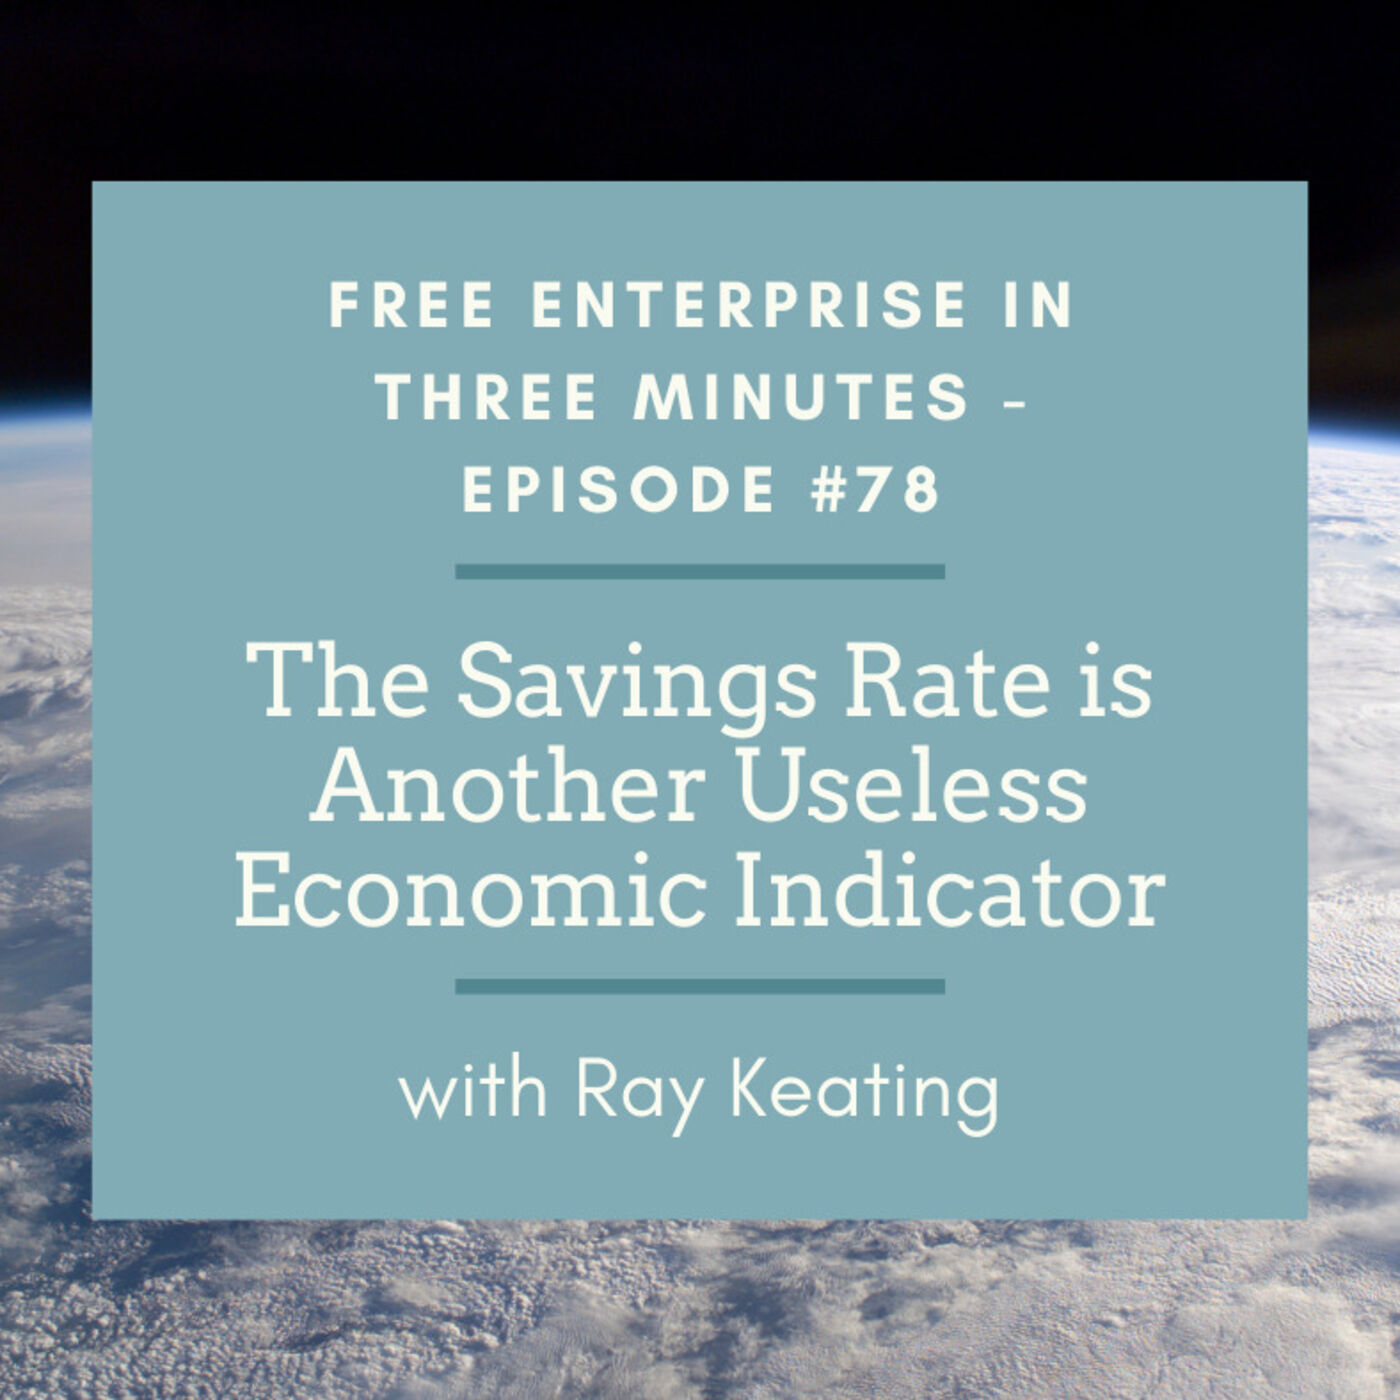 Episode #78: The Savings Rate is Another Useless Economic Indicator